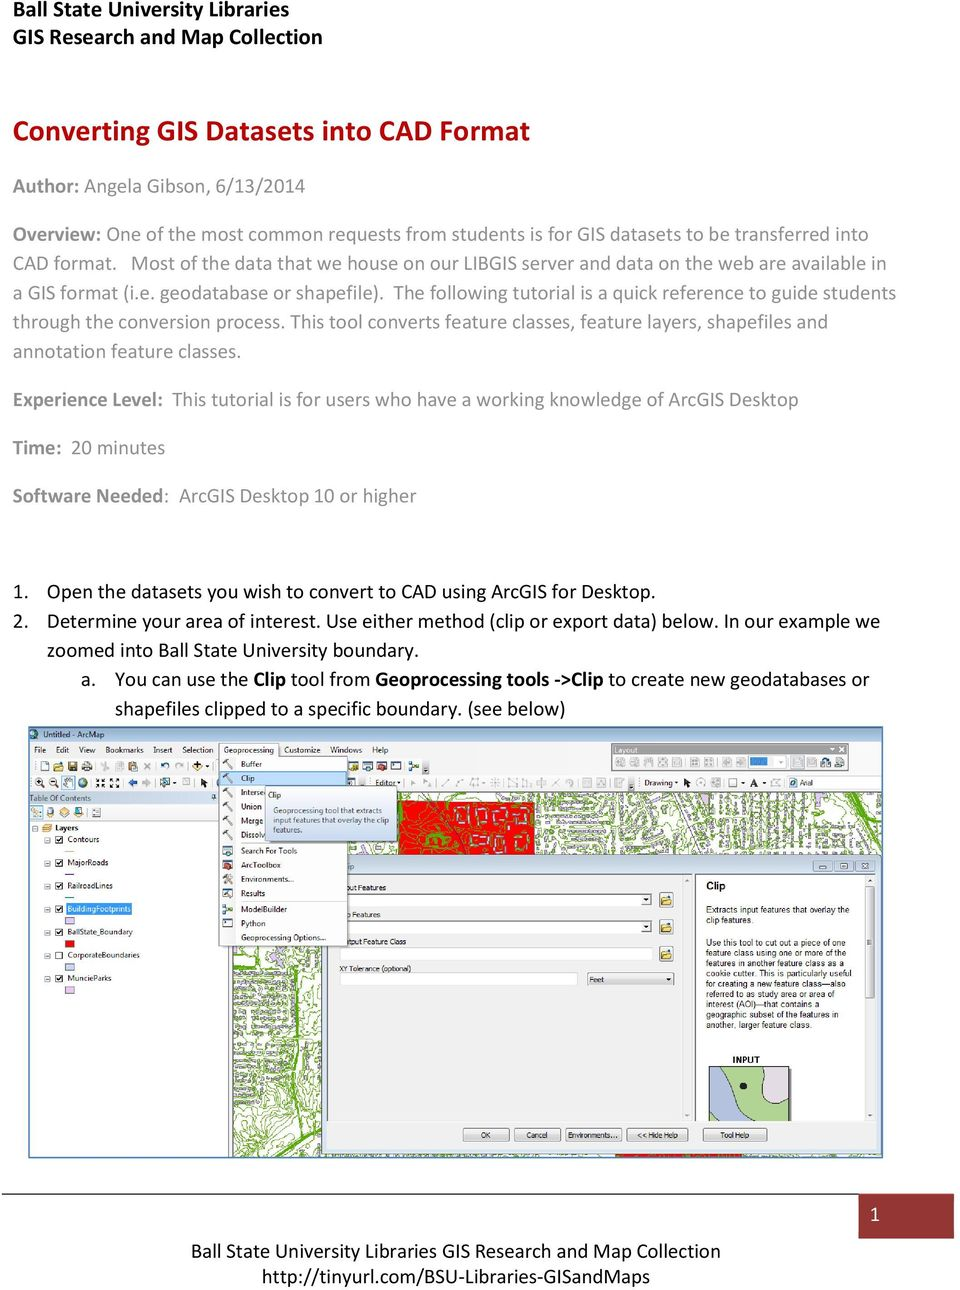 The following tutorial is a quick reference to guide students through the conversion process. This tool converts feature classes, feature layers, shapefiles and annotation feature classes.